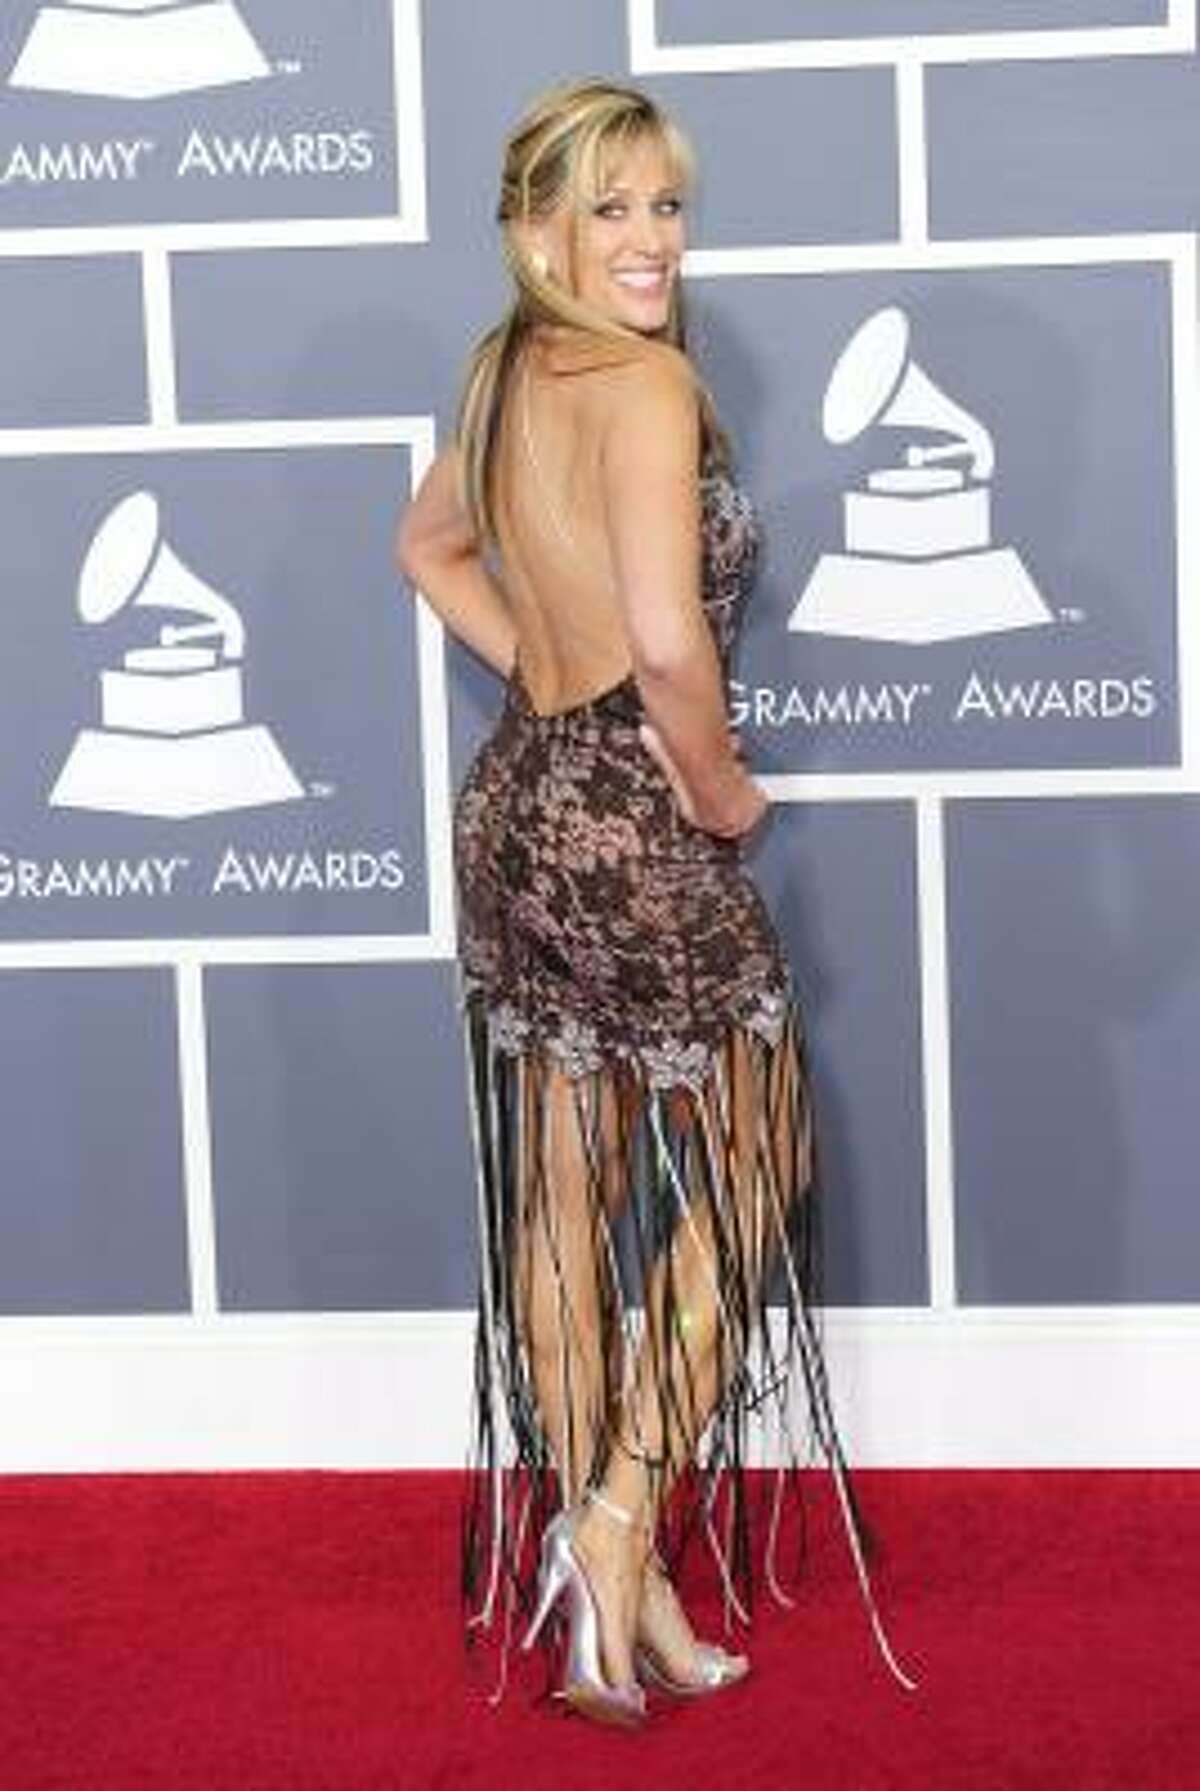 Singer Lilian Garcia arrives for the 53rd Annual Grammy Awards at the Staples Center.